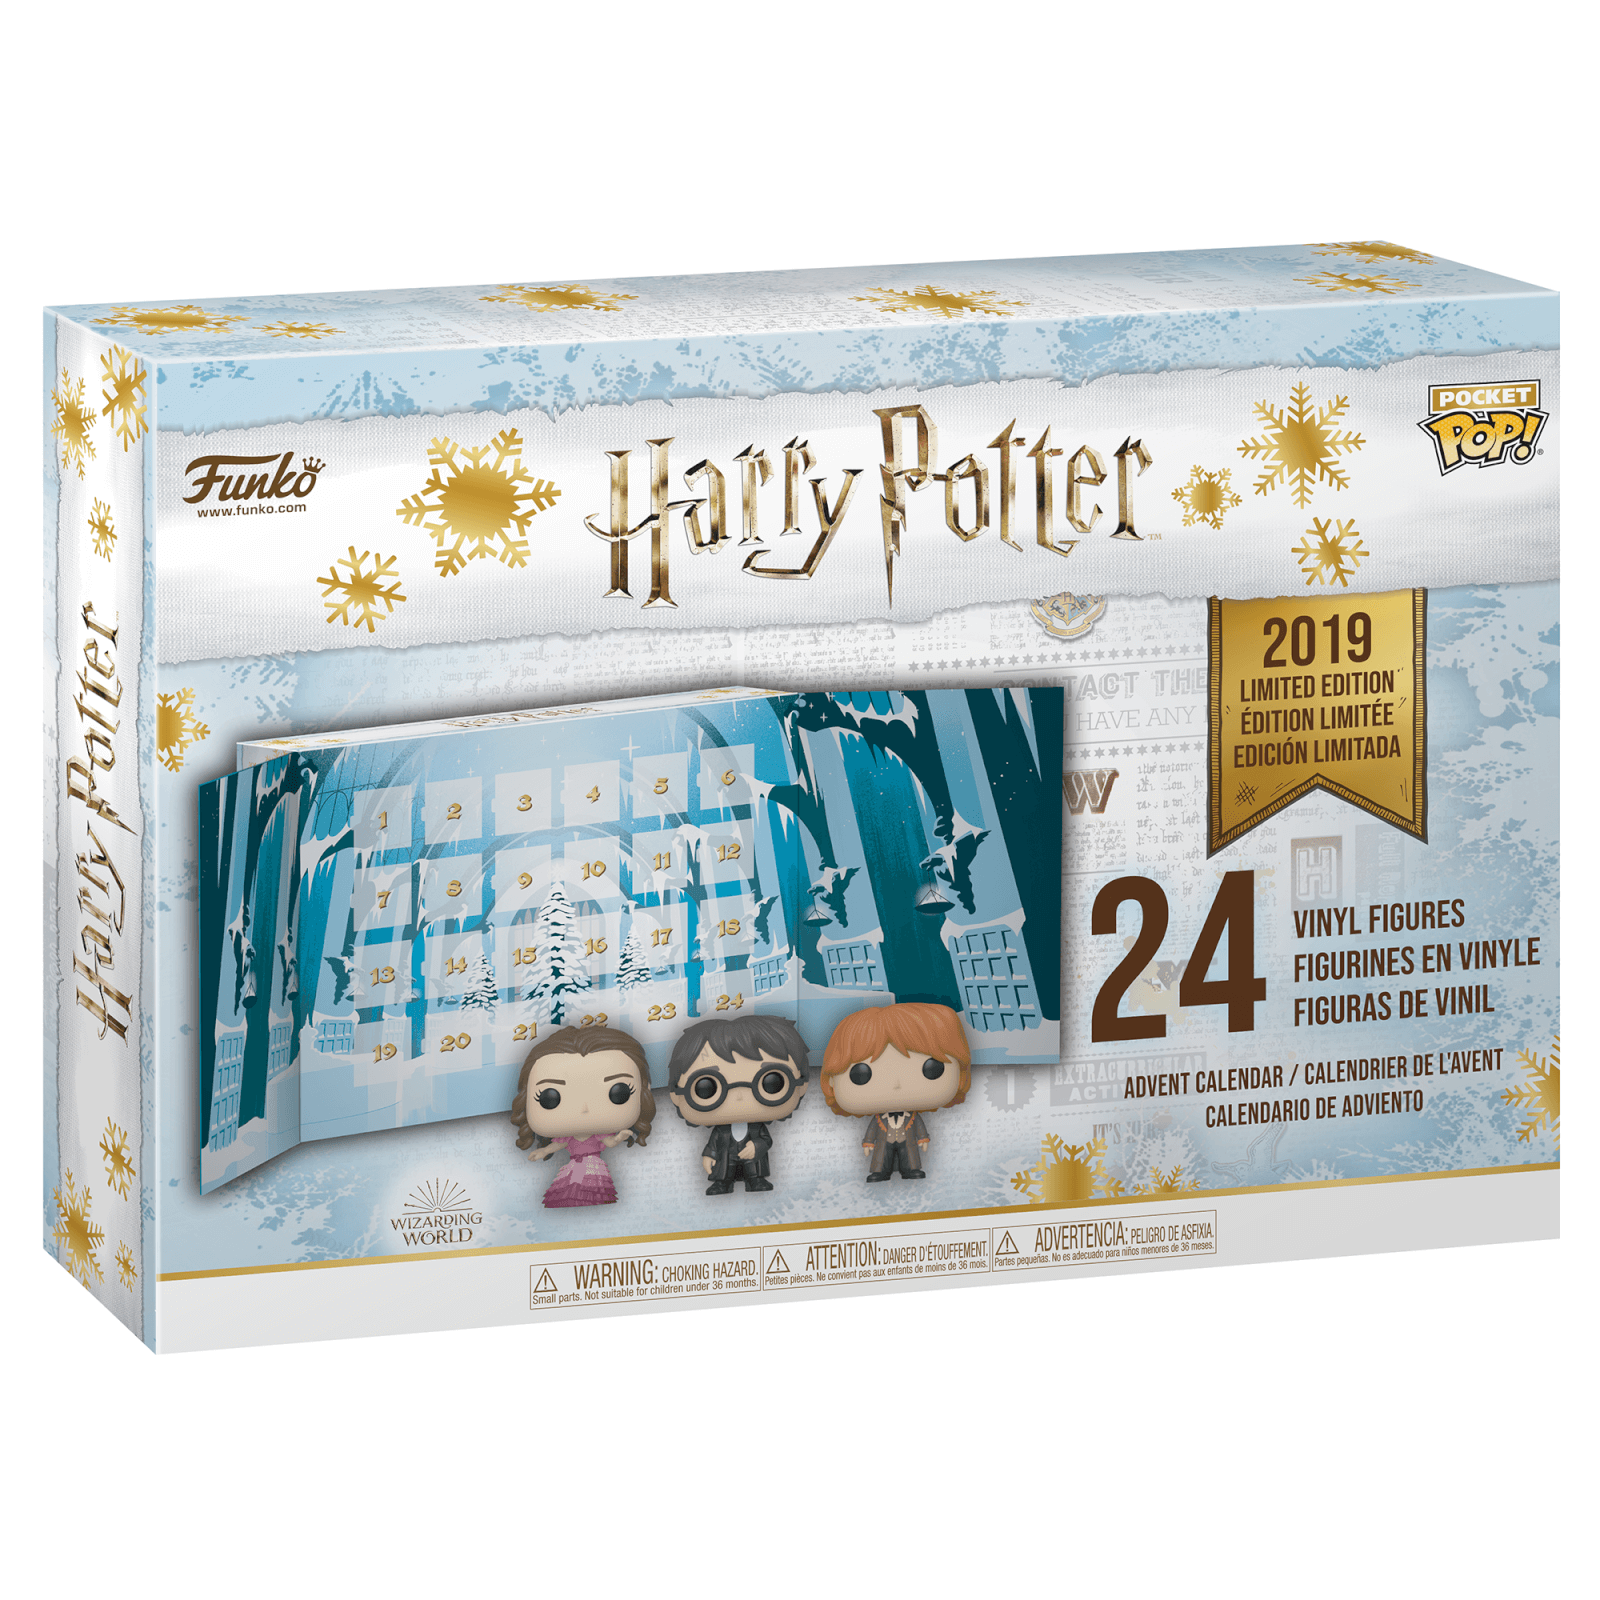 Calendrier De L Avent Nourriture.Calendrier De L Avent Funko Pocket Pop Harry Potter 2019